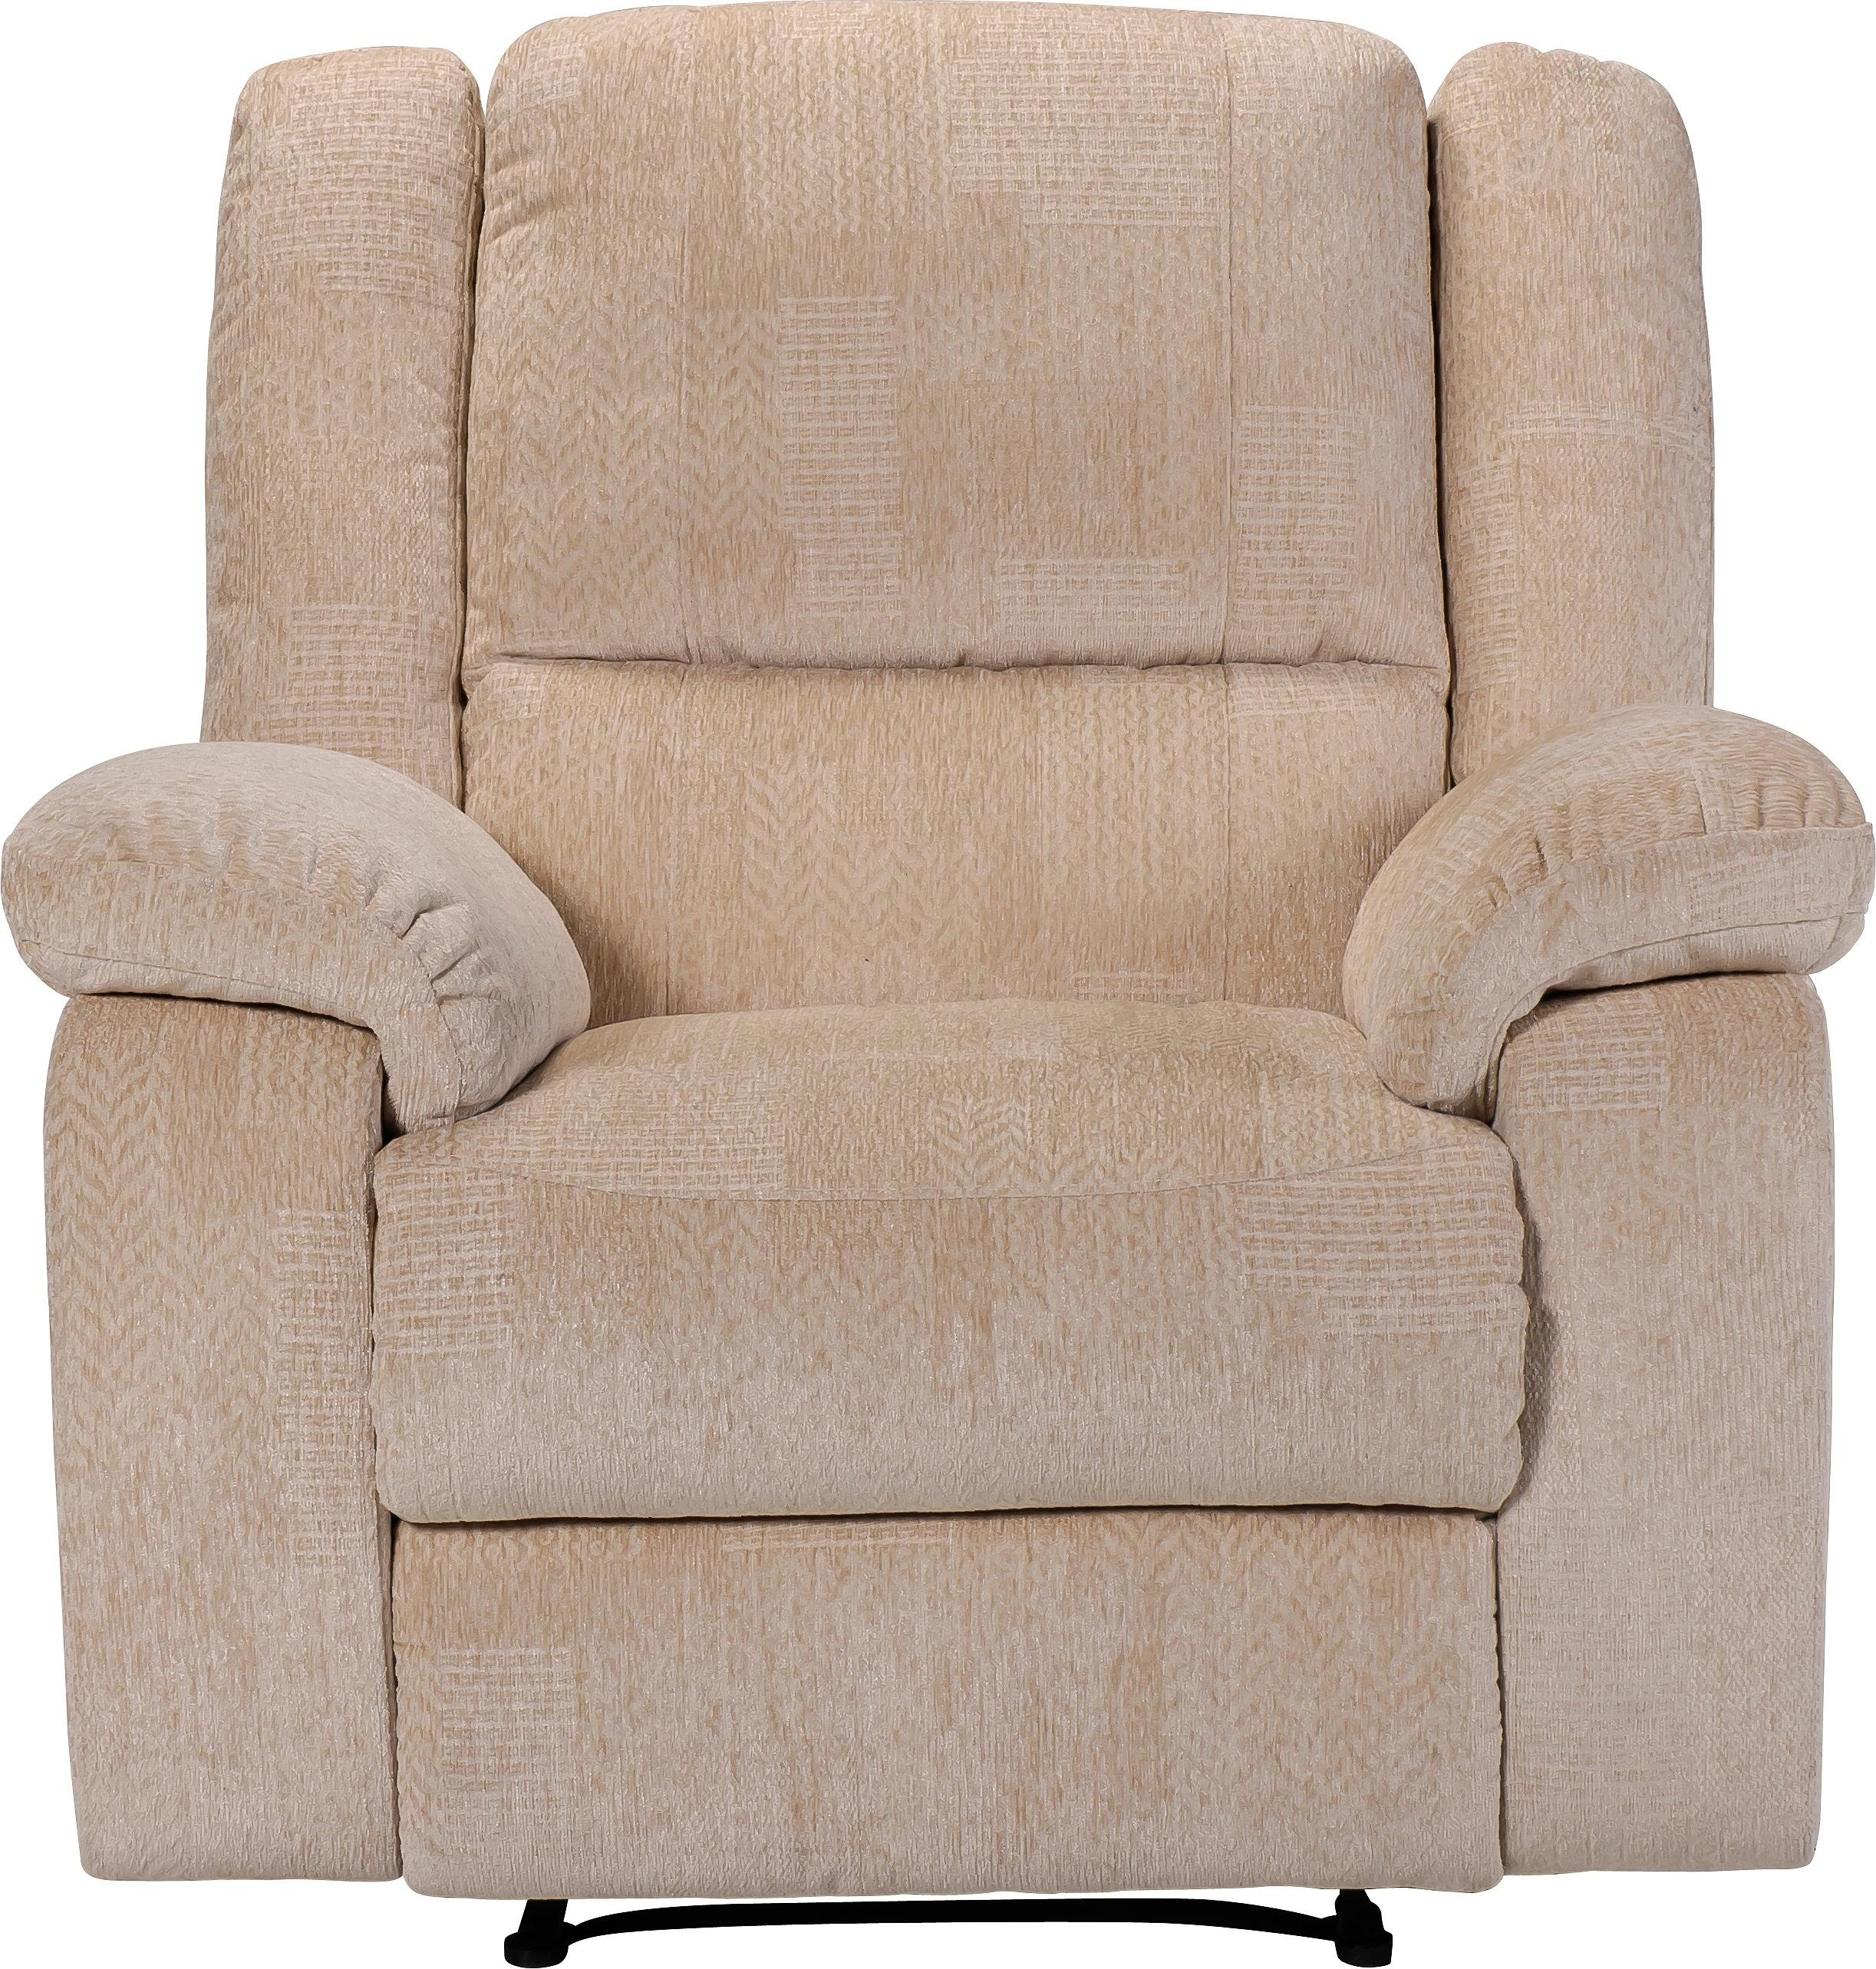 Collection Shelly Fabric Manual Recliner Chair - Natural  sc 1 st  Argos & Results for recliner chairs in Home and garden Living room ... islam-shia.org